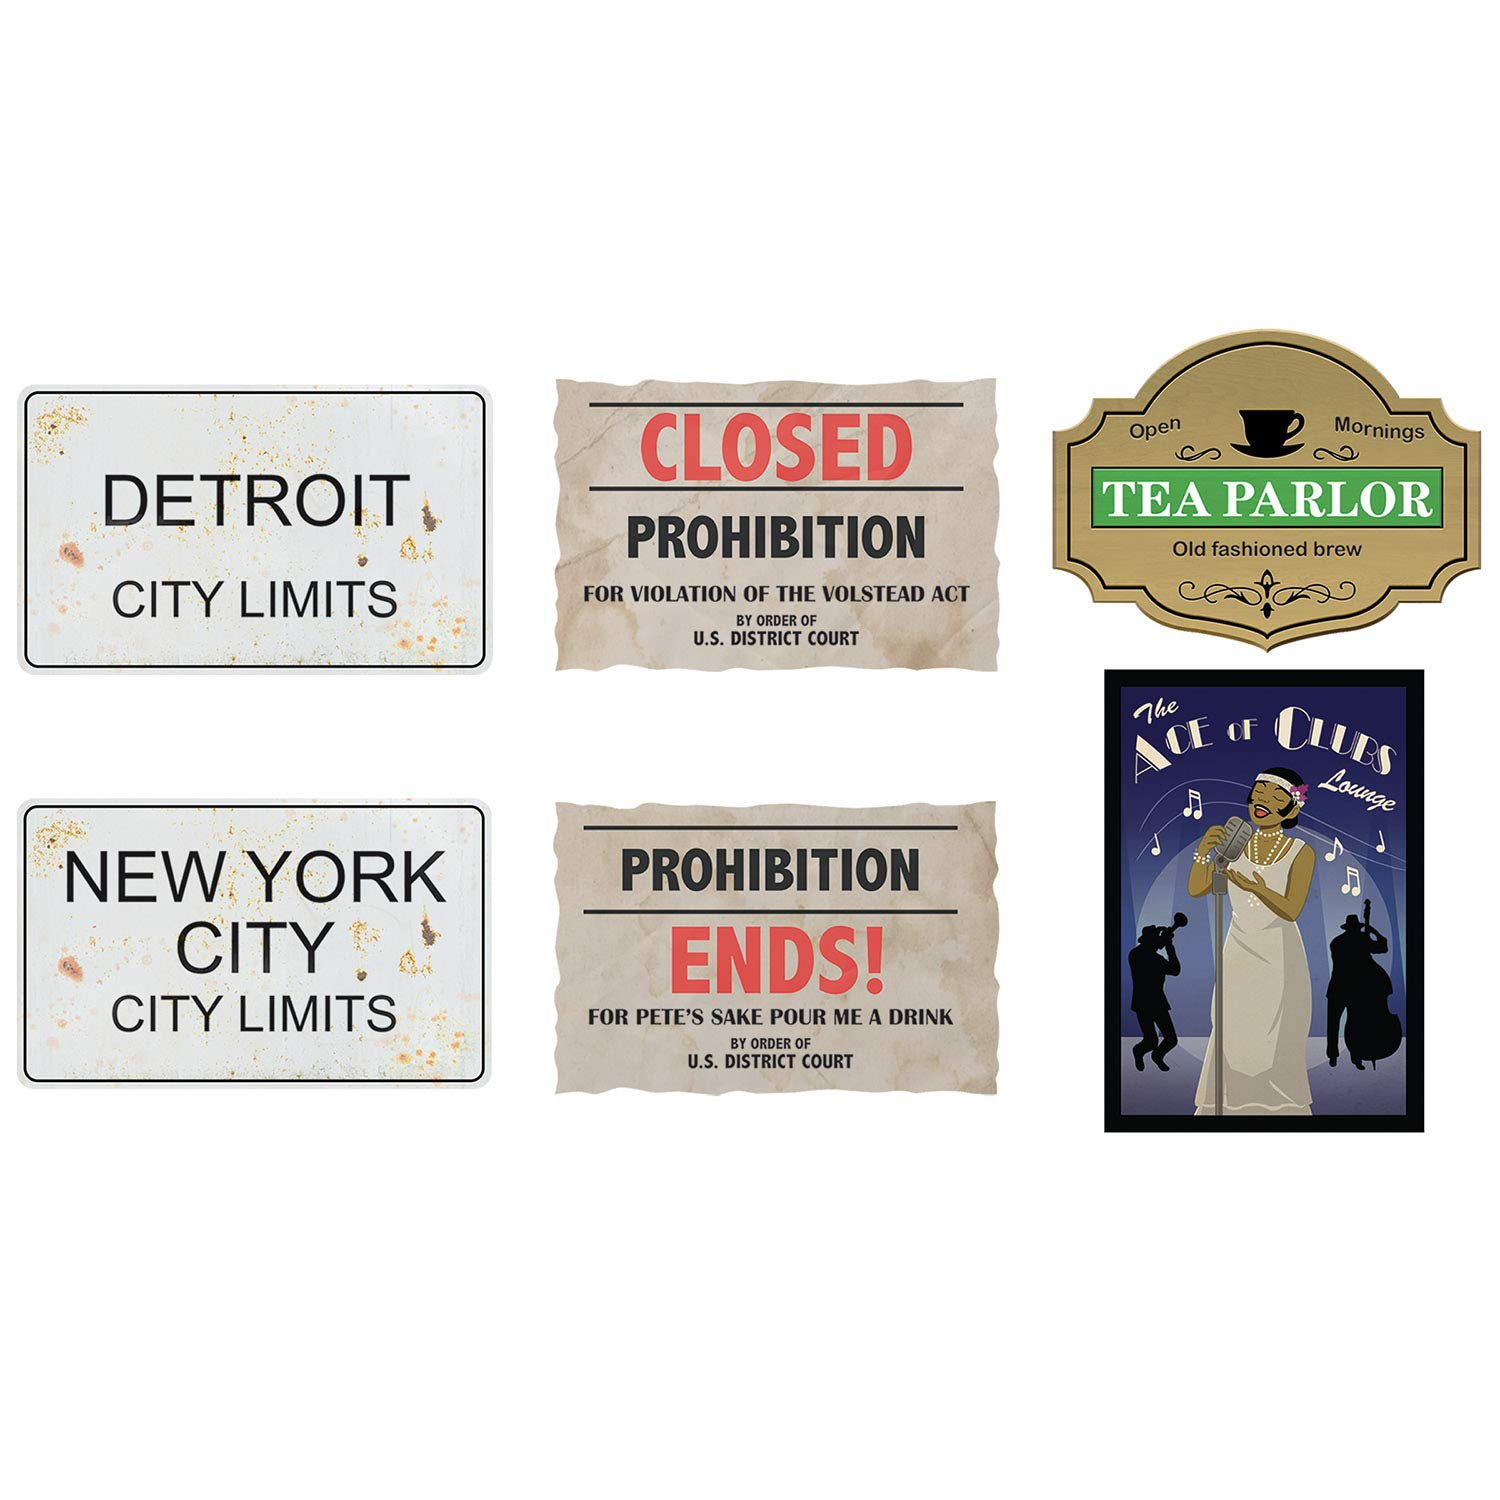 Beistle Roaring 20's Party Decorations, Great 20's Prohibition Cutouts 11 Inch to 14 Inch, Pack 72 by Beistle